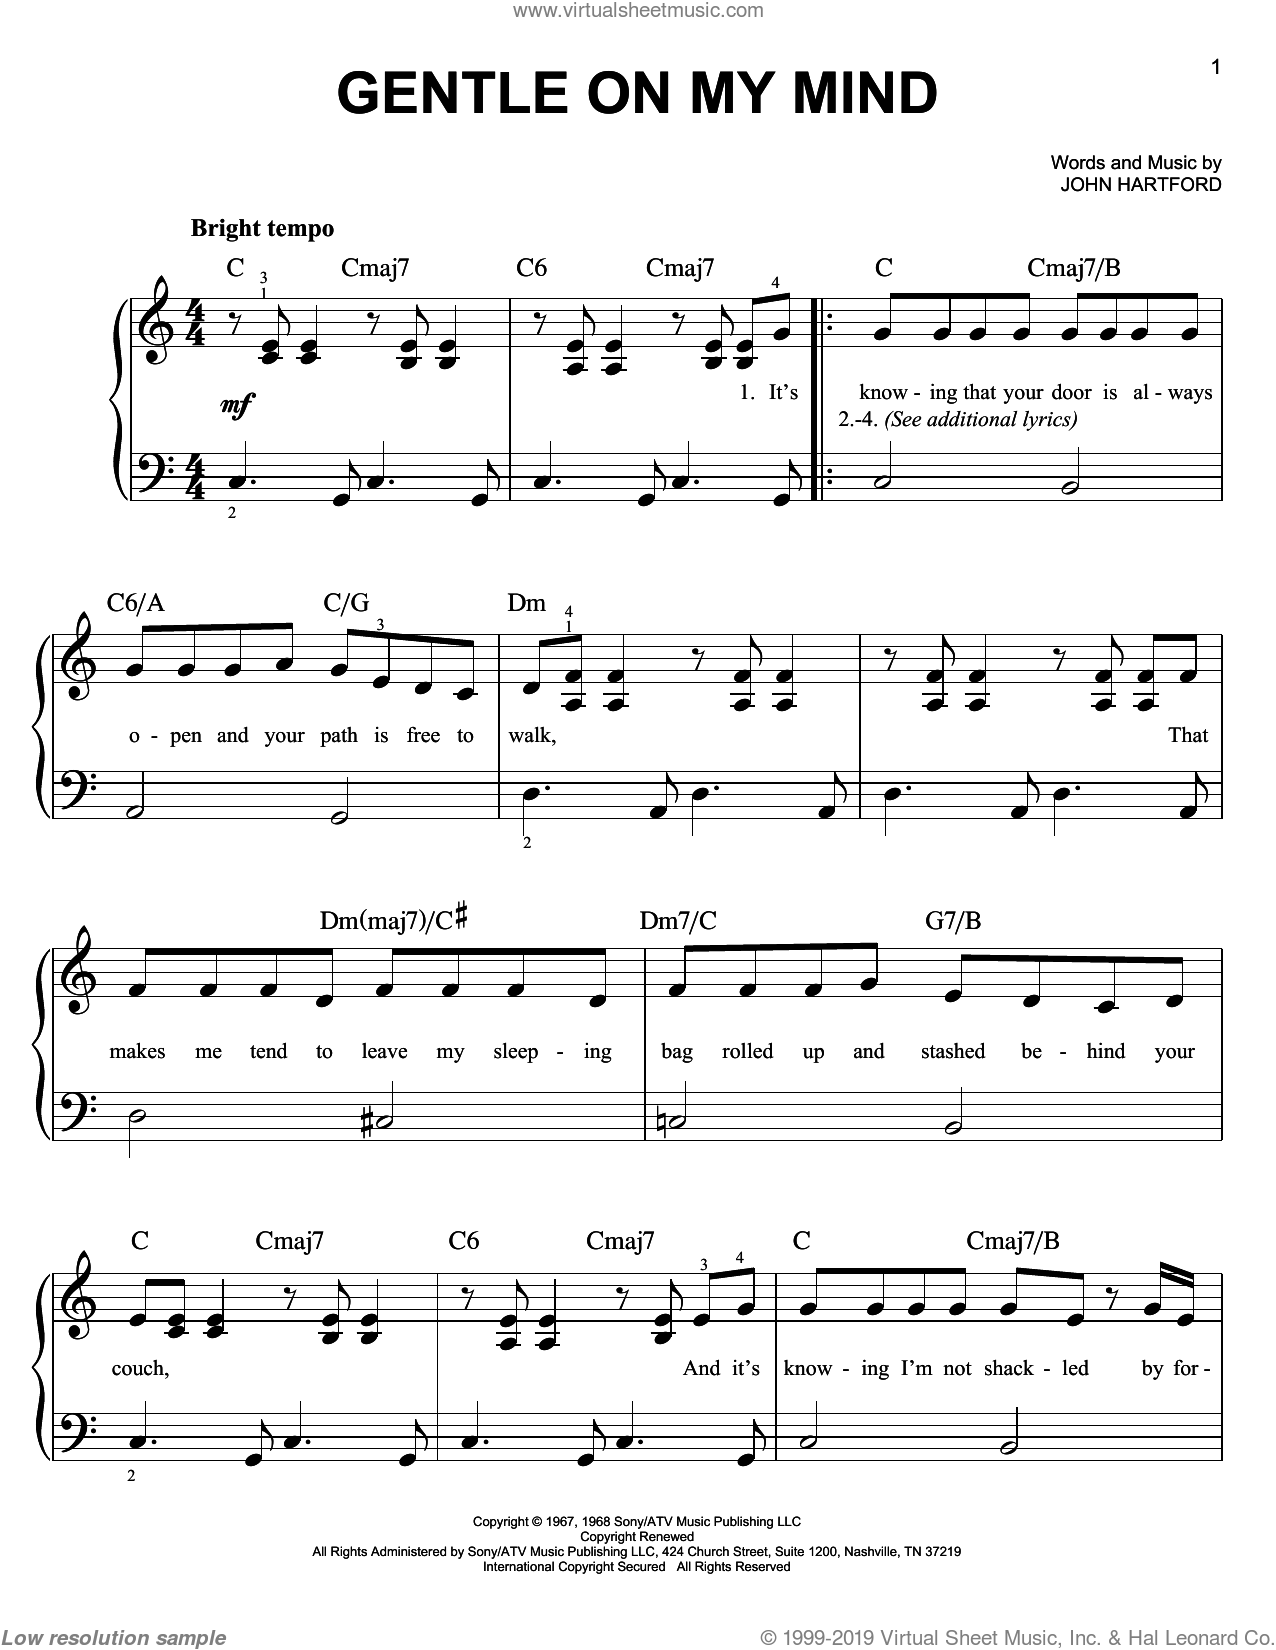 Gentle On My Mind sheet music for piano solo by Glen Campbell, Johnny Cash and John Hartford, beginner skill level